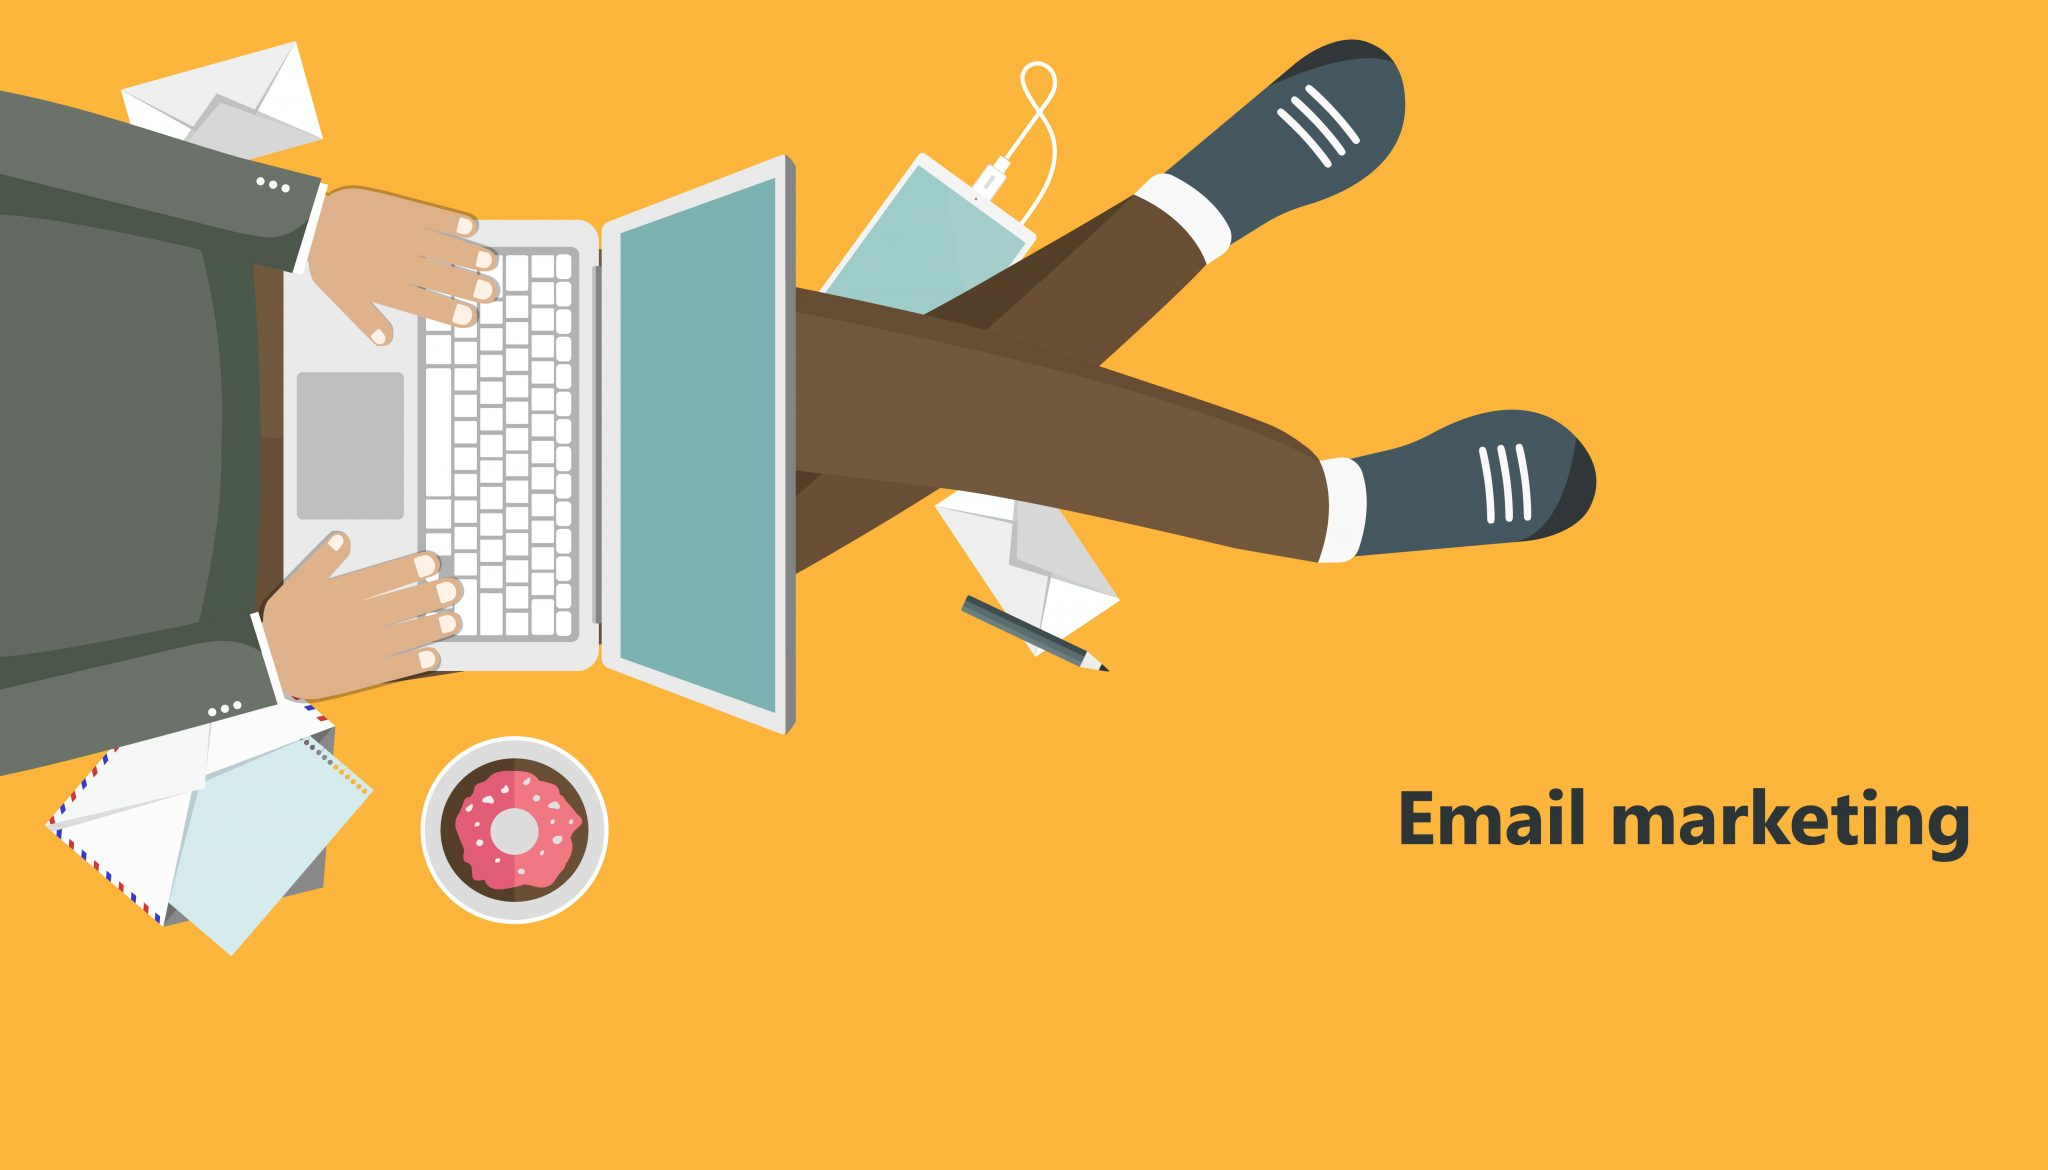 Herramientas de Email Marketing recomendadas: Mailrelay